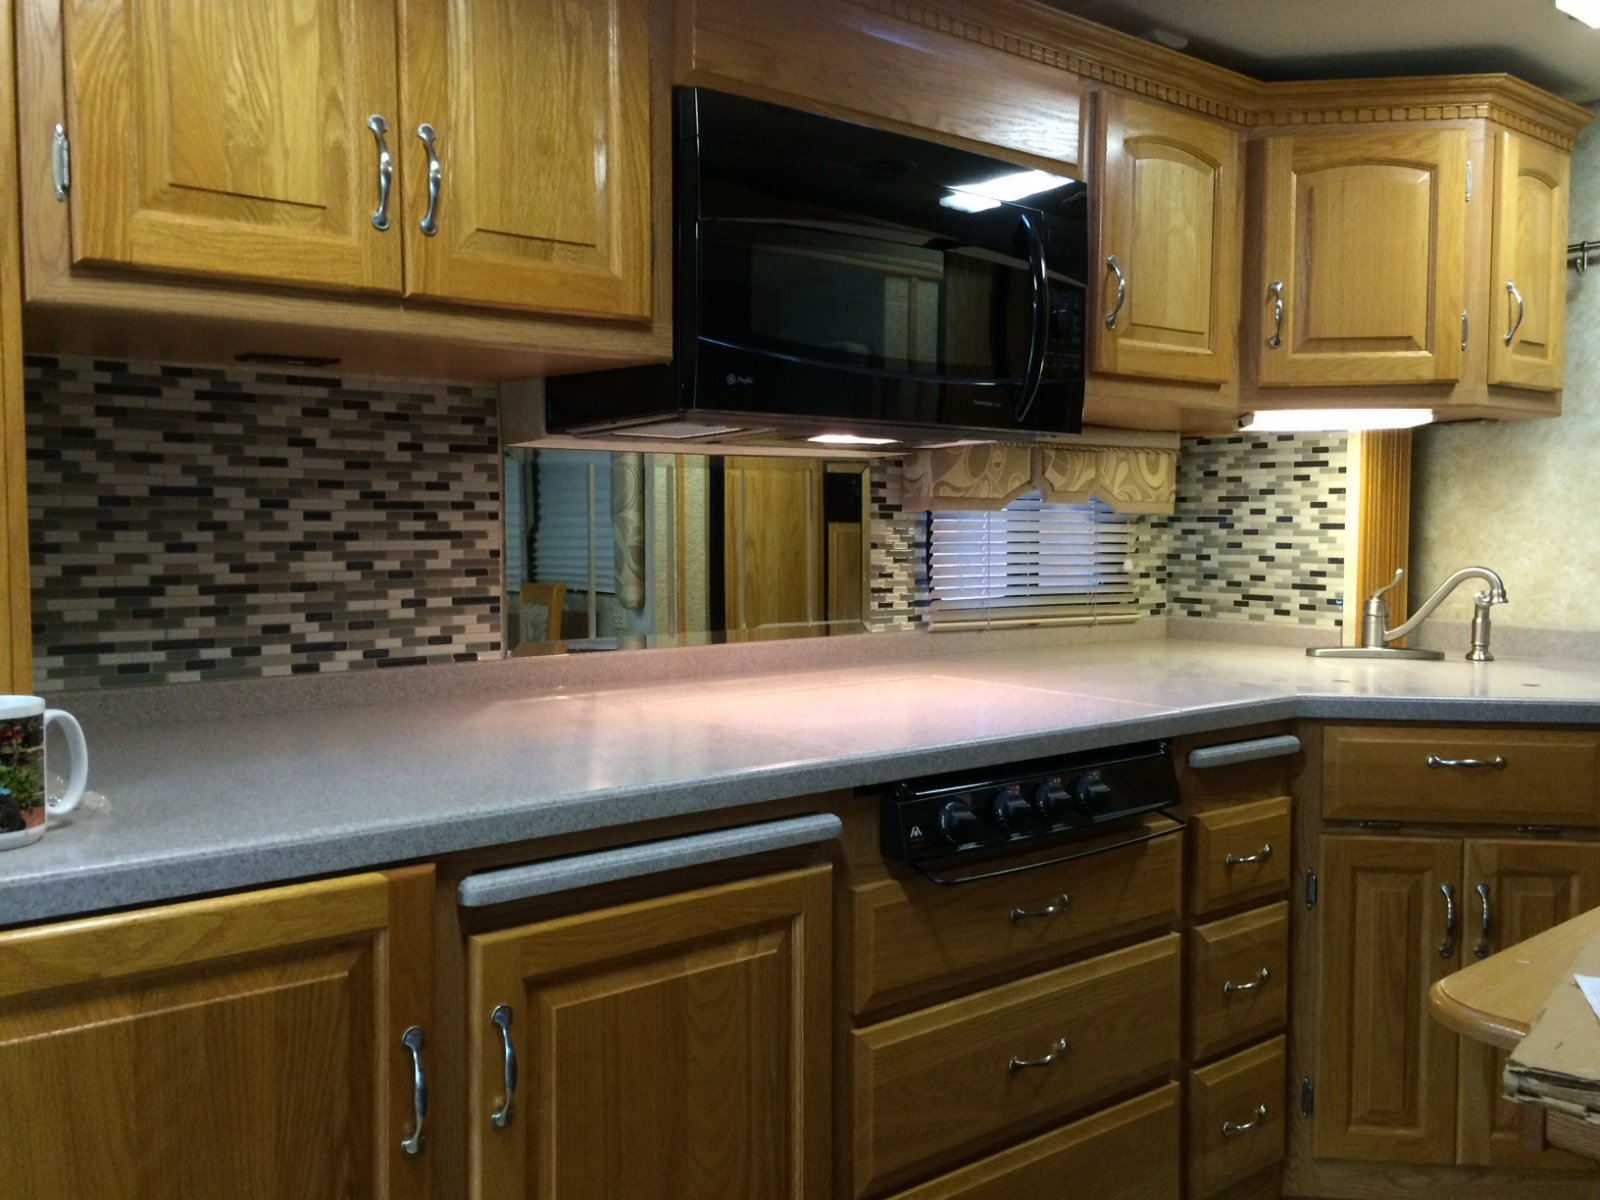 Click image for larger version  Name:kitchen.jpg Views:59 Size:267.5 KB ID:134317